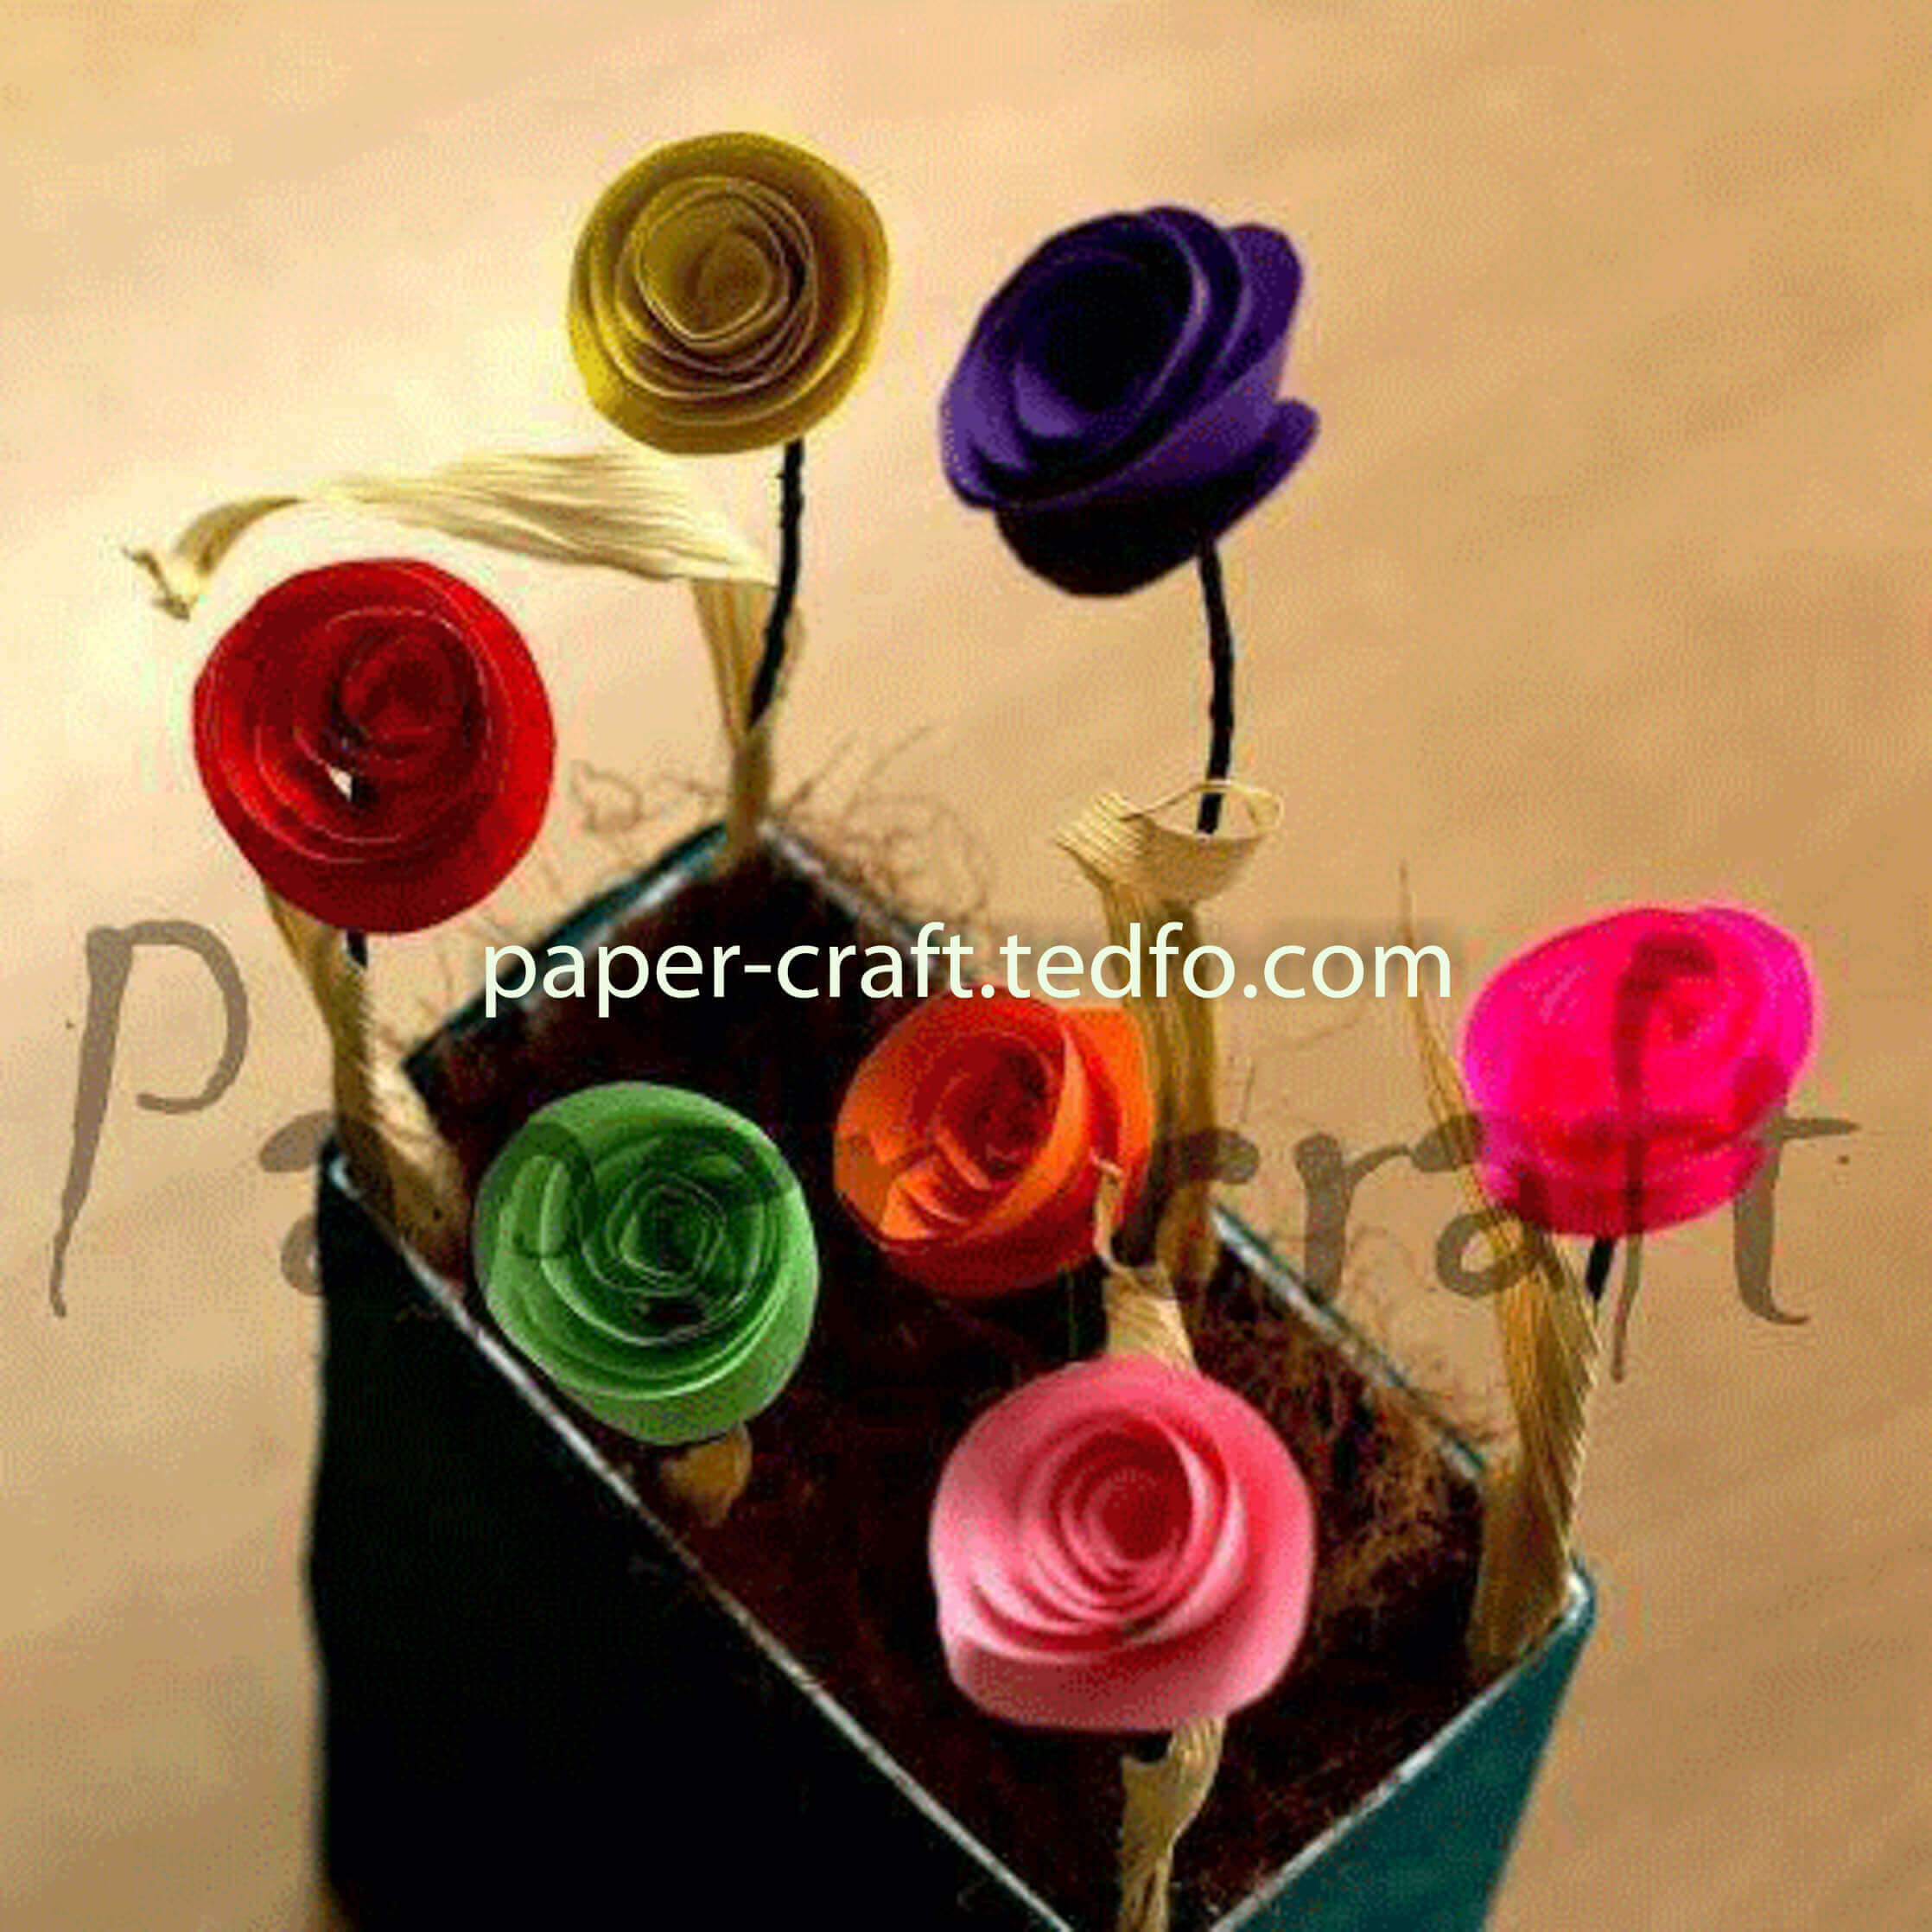 Handcrafted Paper Made Decorative Flower Vase Tedfo